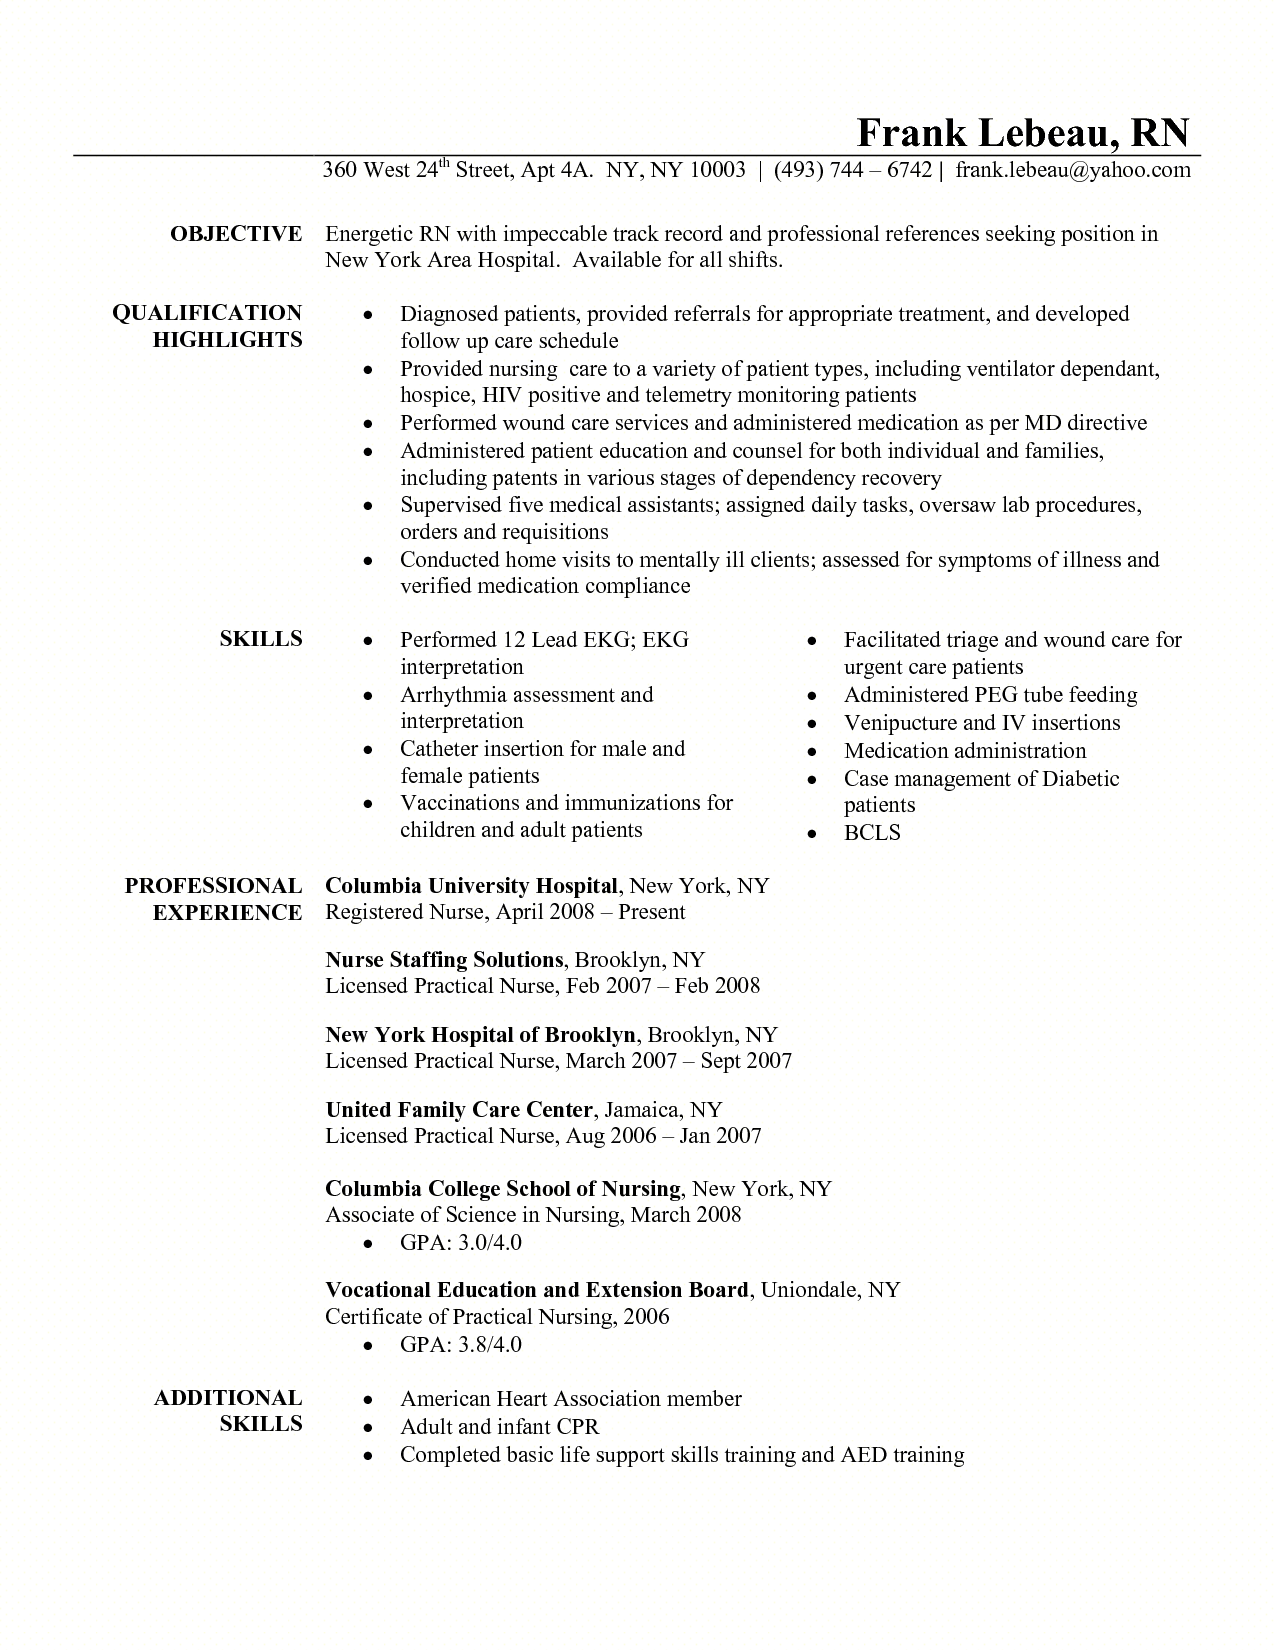 sample new rn resume - Resume Examples For Registered Nurse